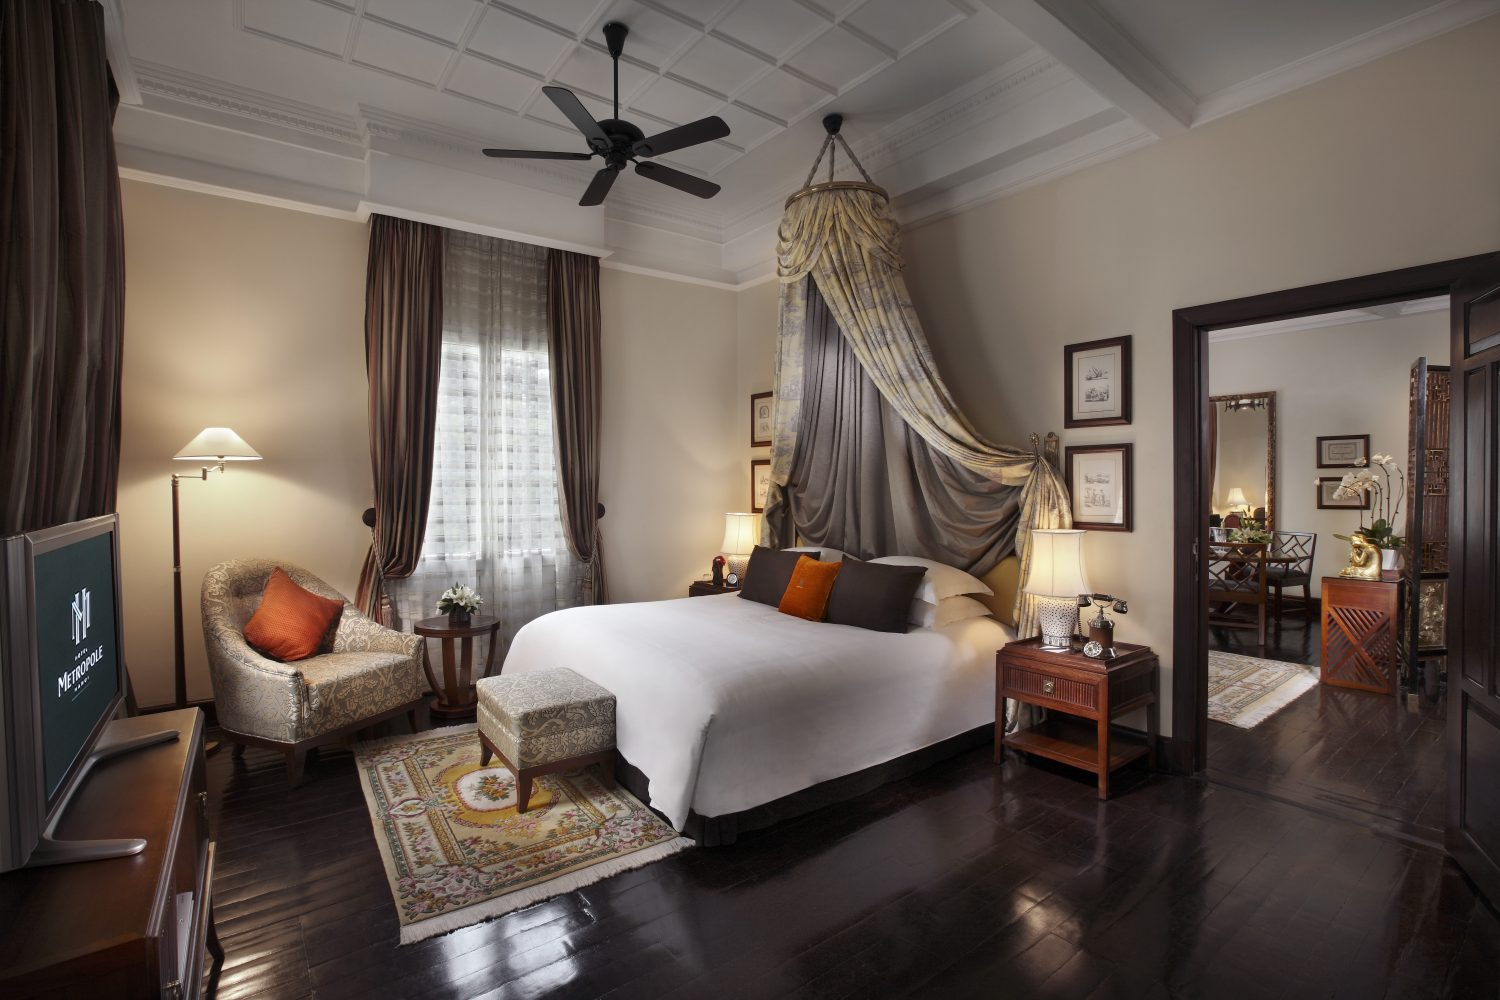 sofitel-metropole-hanoi_luxury-room_feb-2013